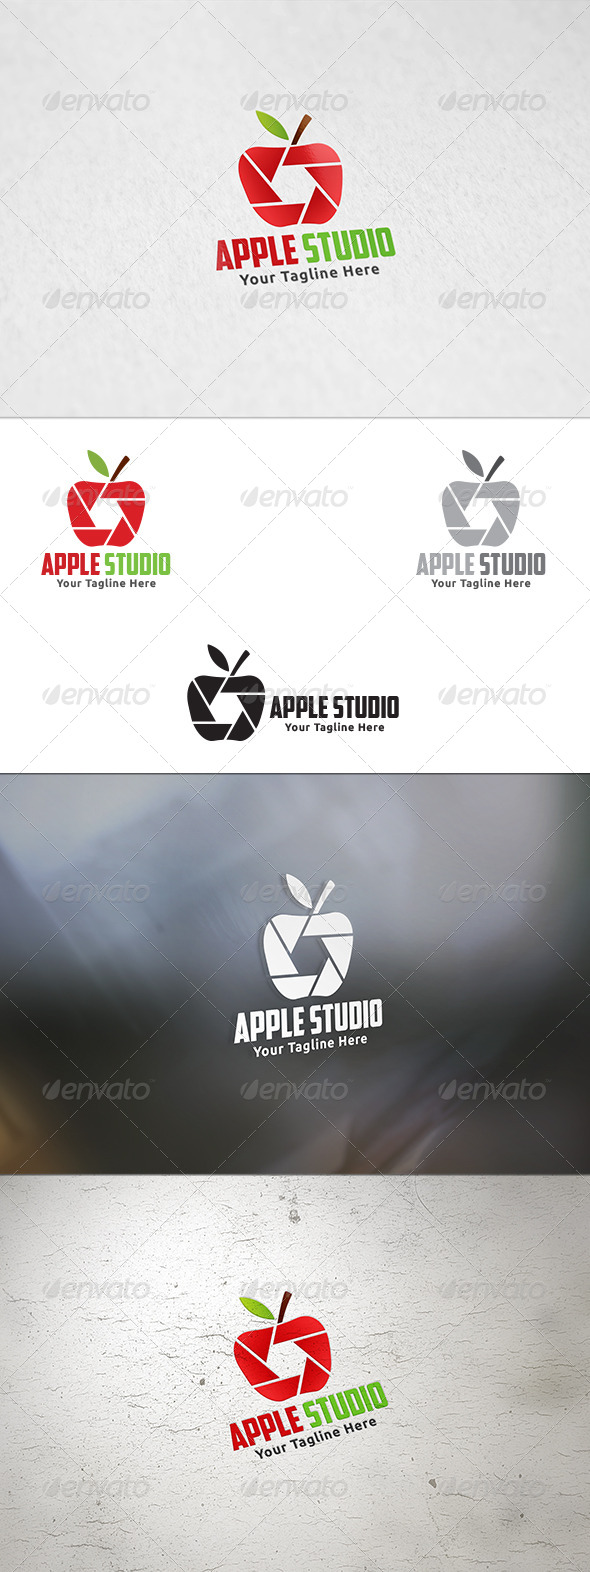 GraphicRiver Apple Studio Logo Template 8736650